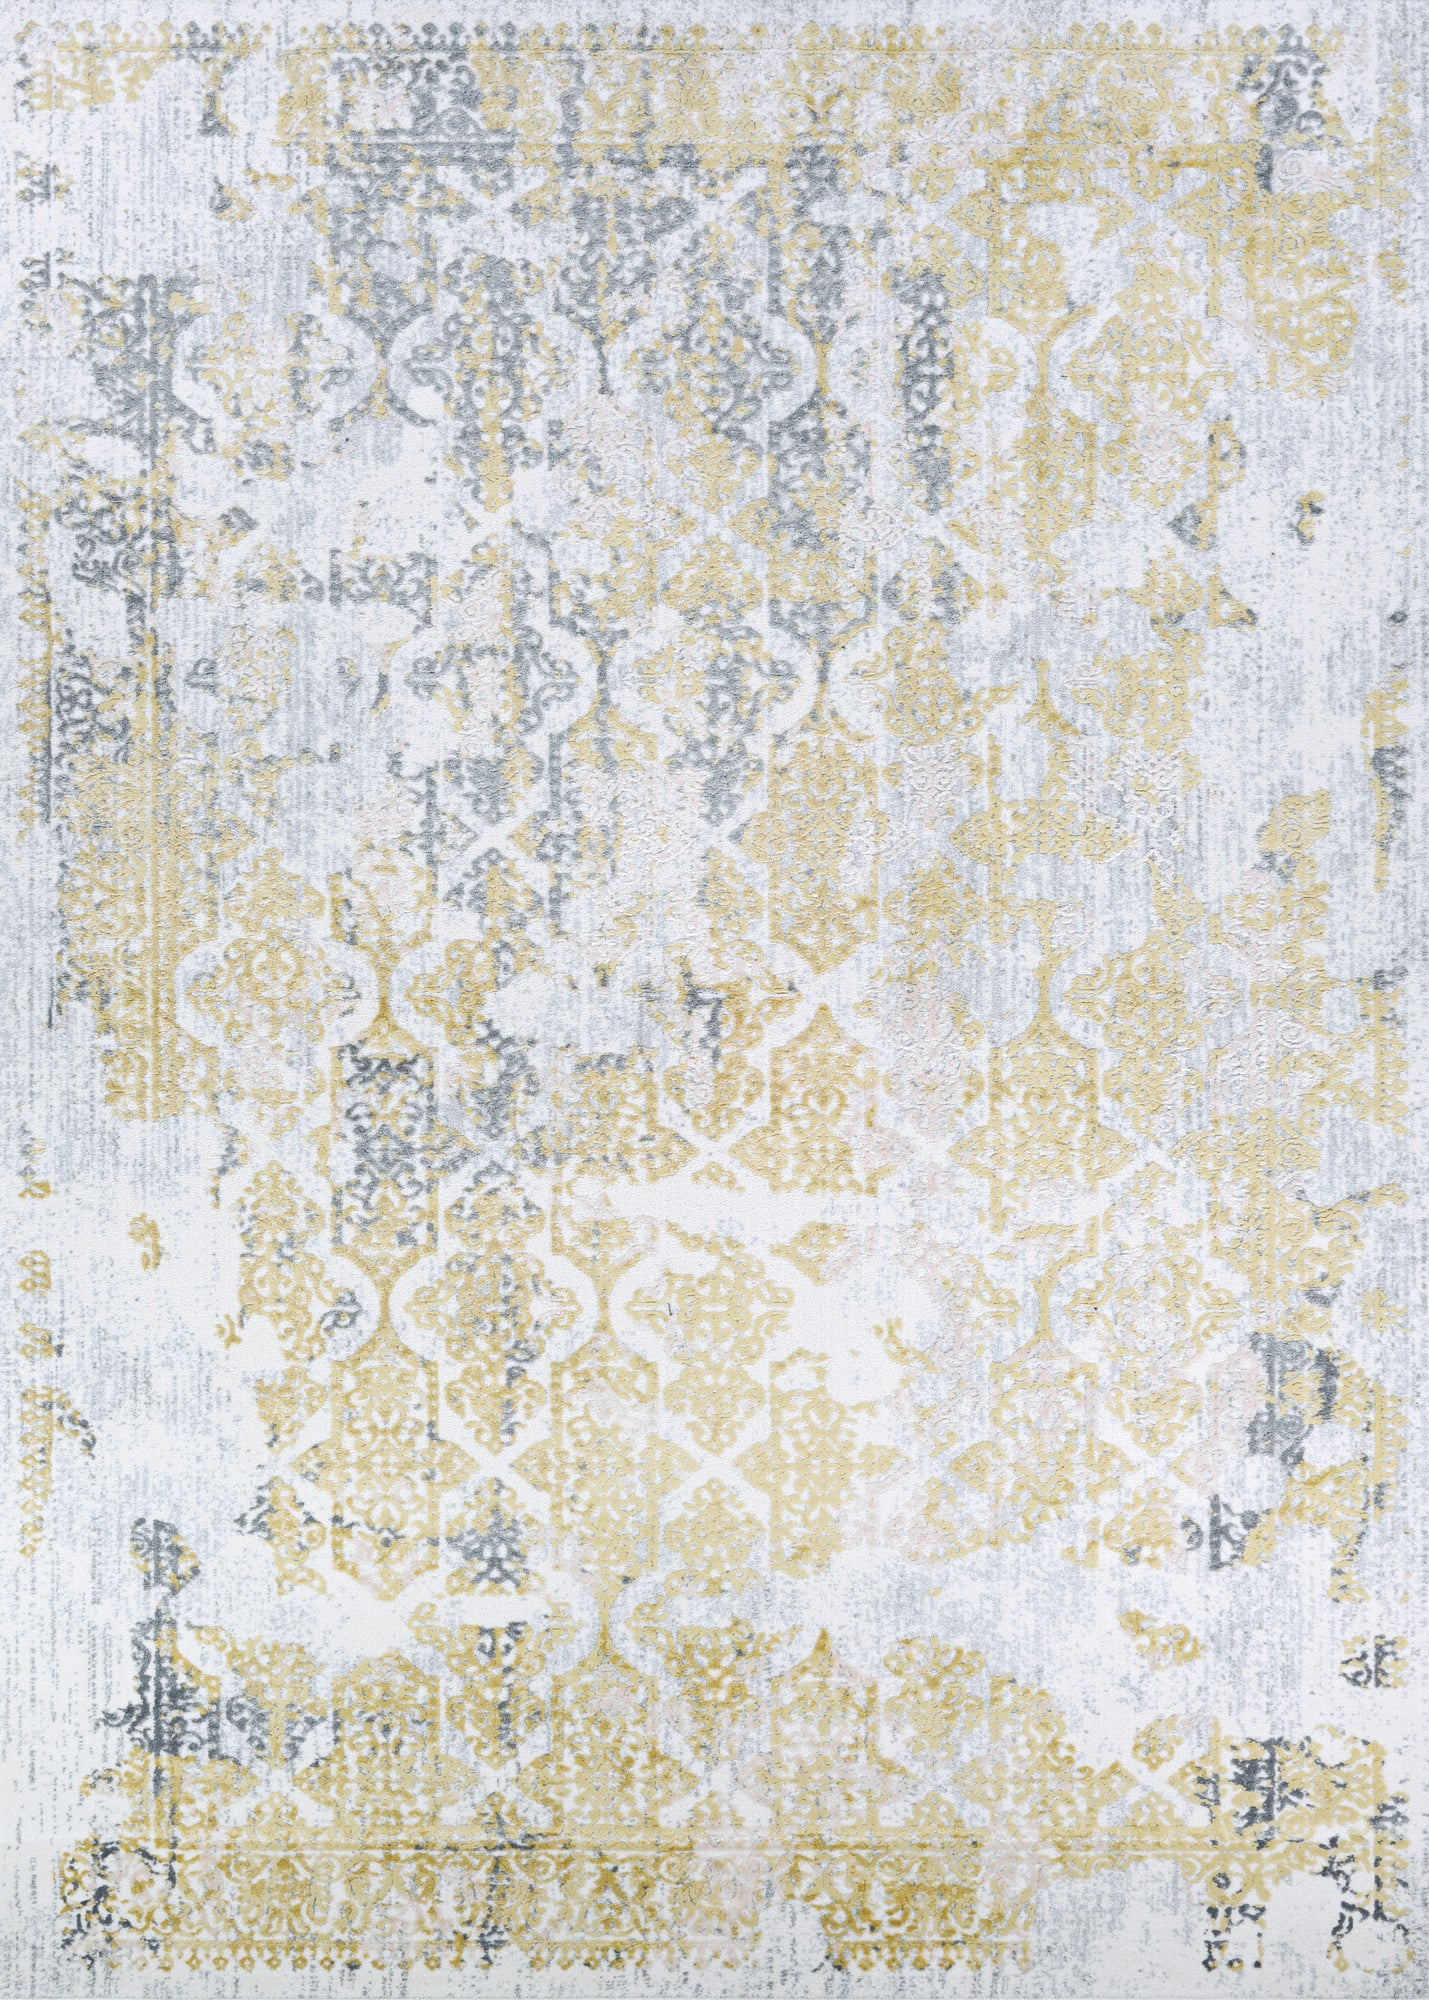 Couristan Calinda Grand Damask Gold/Silver/Ivry Area Rug main image